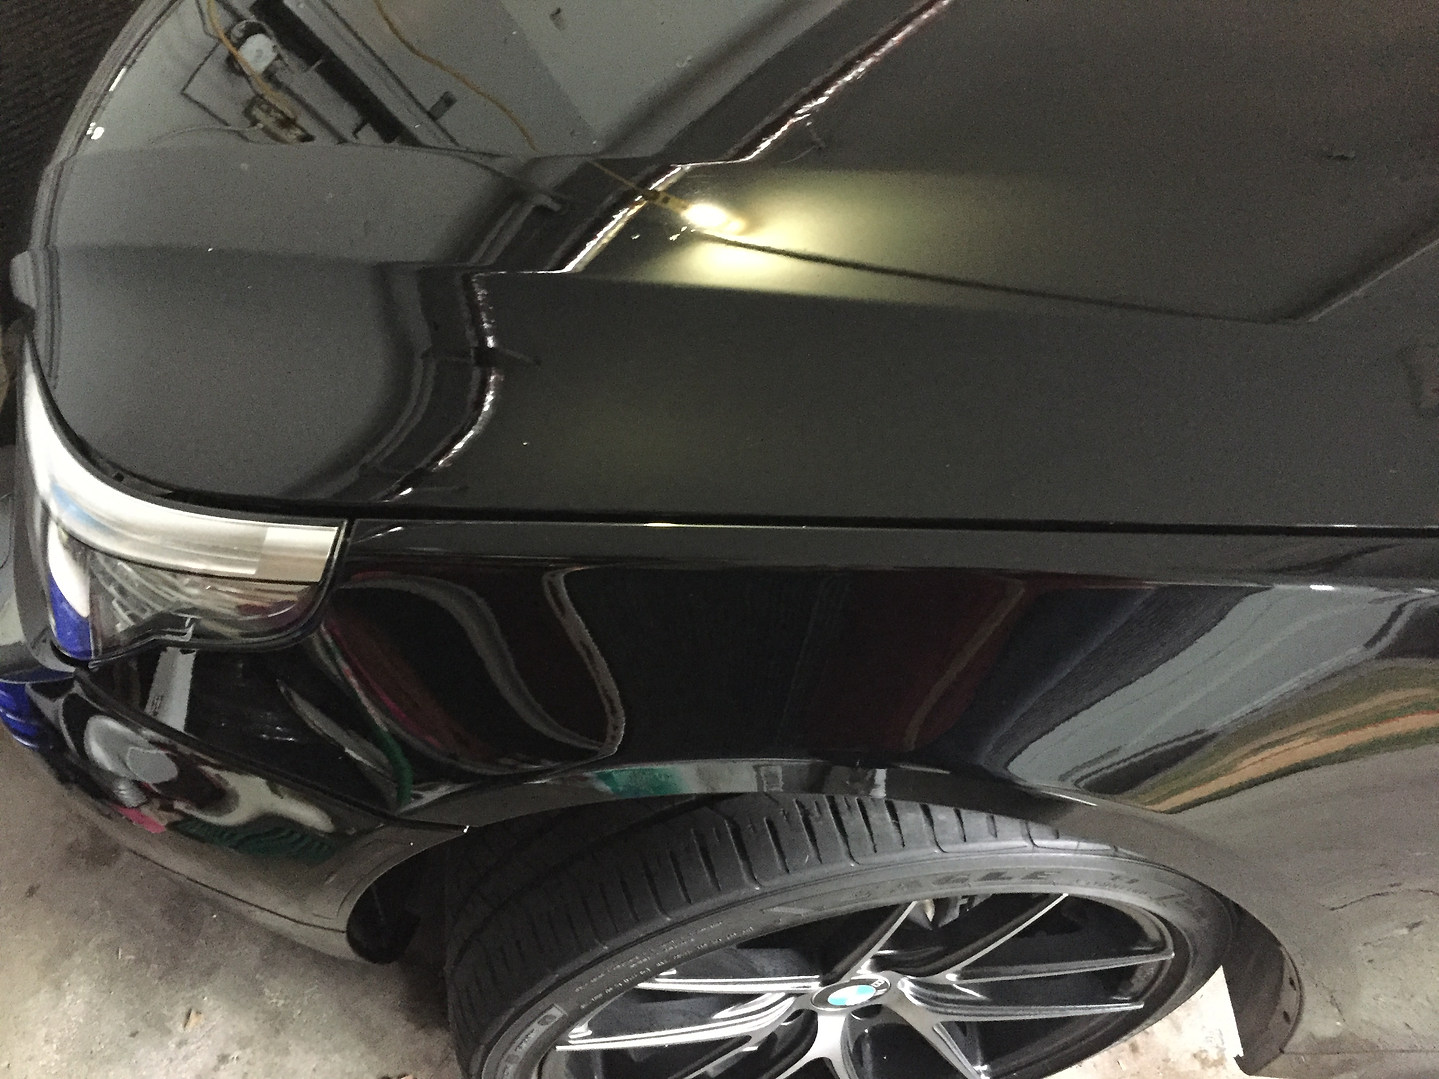 Swirl removal after photo